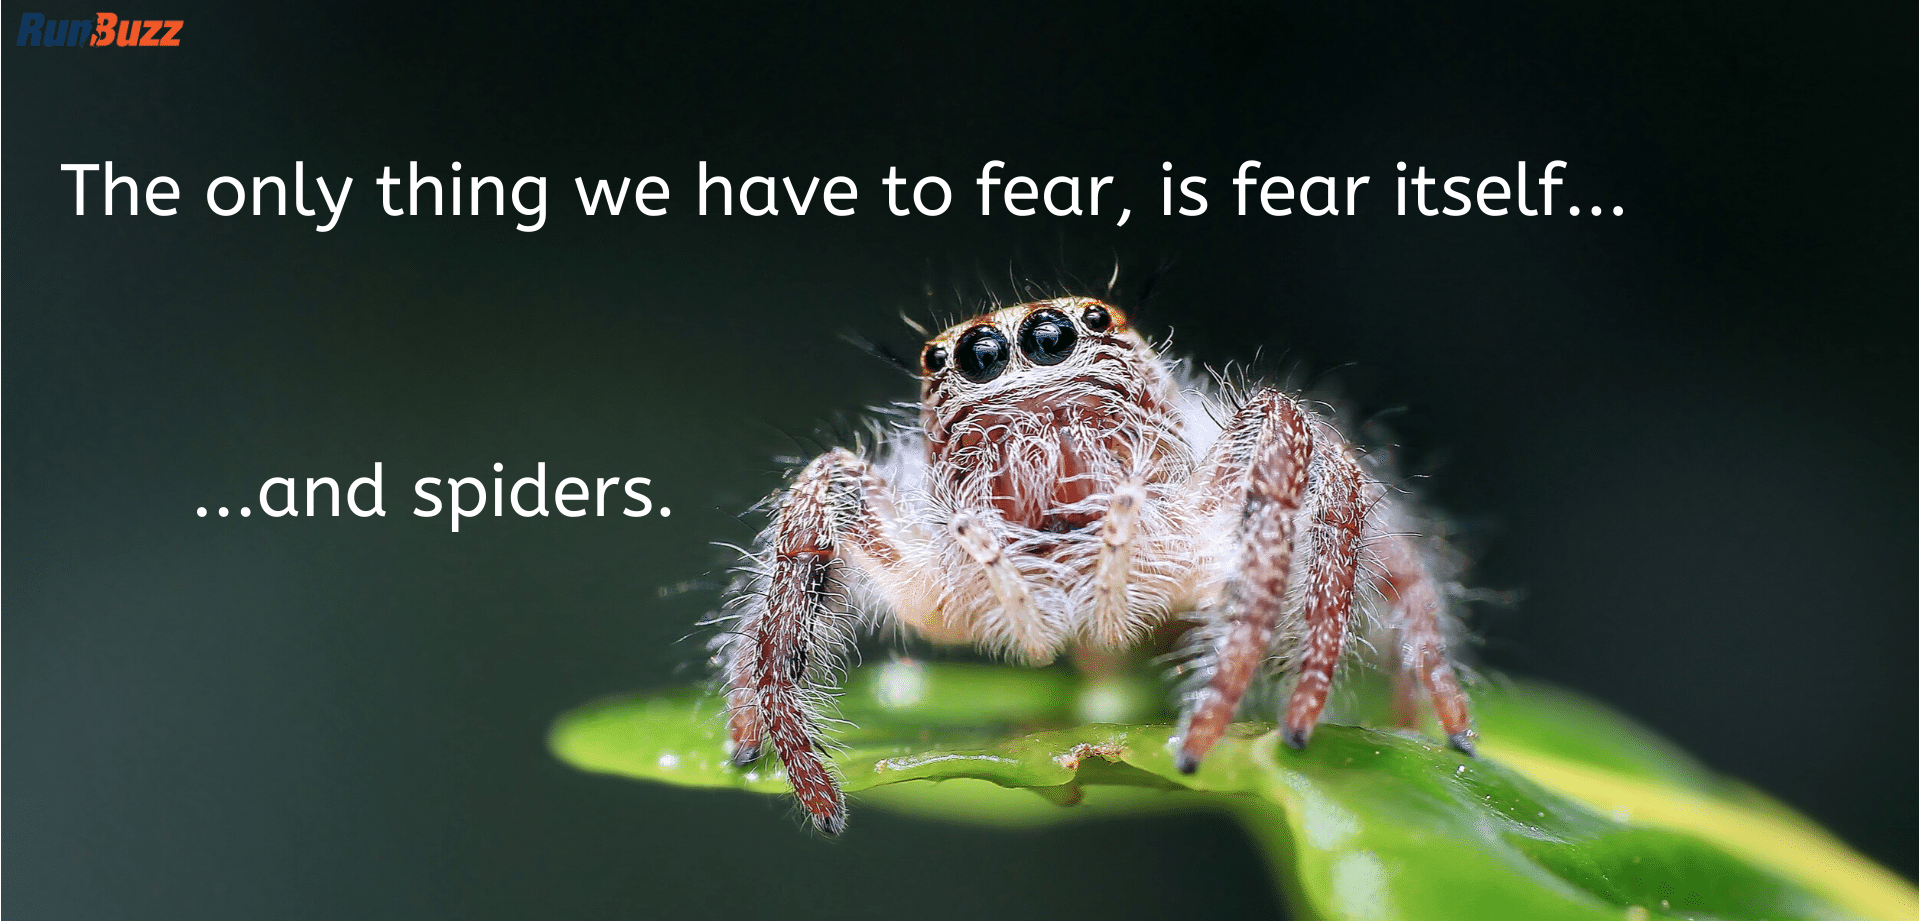 The-only-thing-we-have-to-fear-is-fear-itself